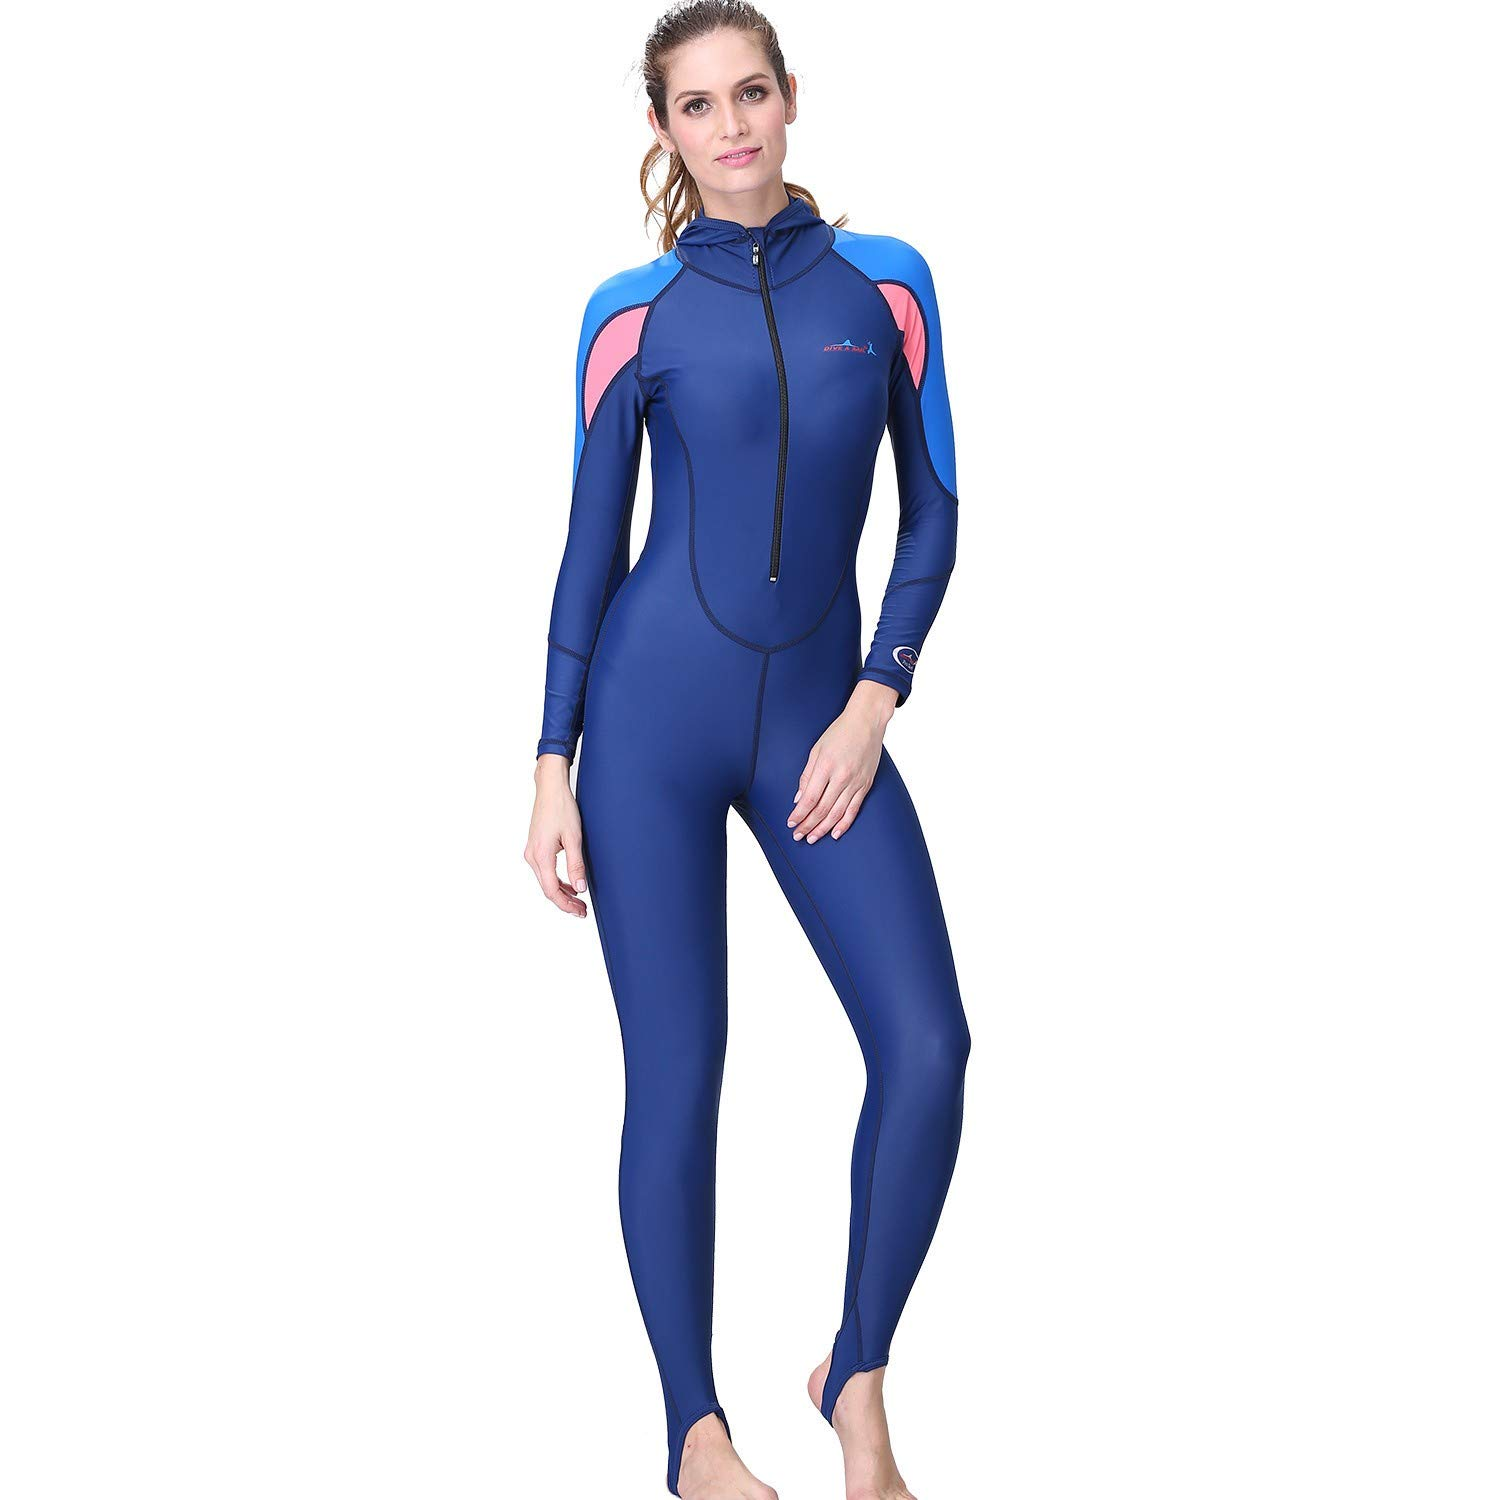 MILIMIEYIK with Hooded Wetsuit Women, Womens Wetsuit Long Sleeve Full Suit Premium Neoprene Womens Suit Snorkeling Scuba Blue